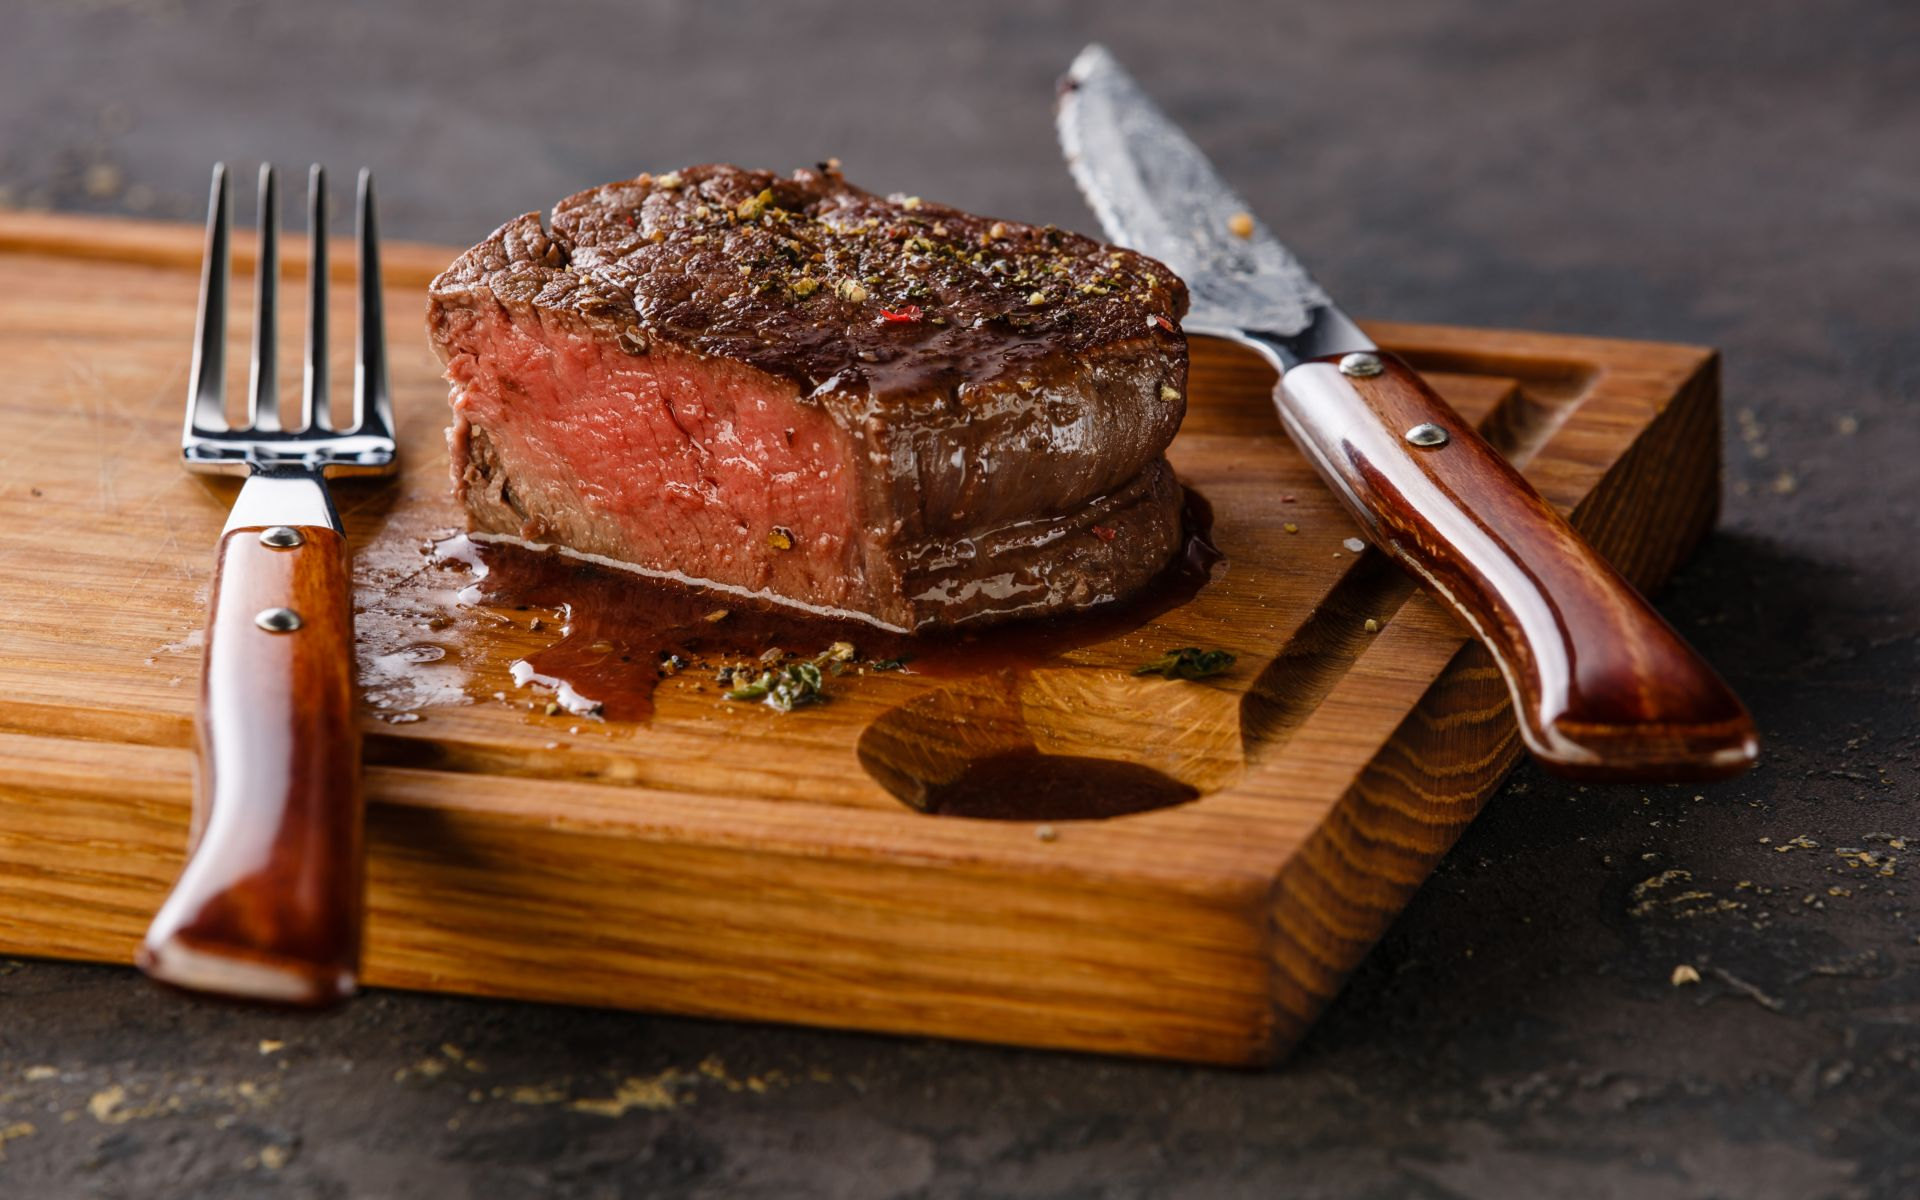 filet mignon on a wood cutting board